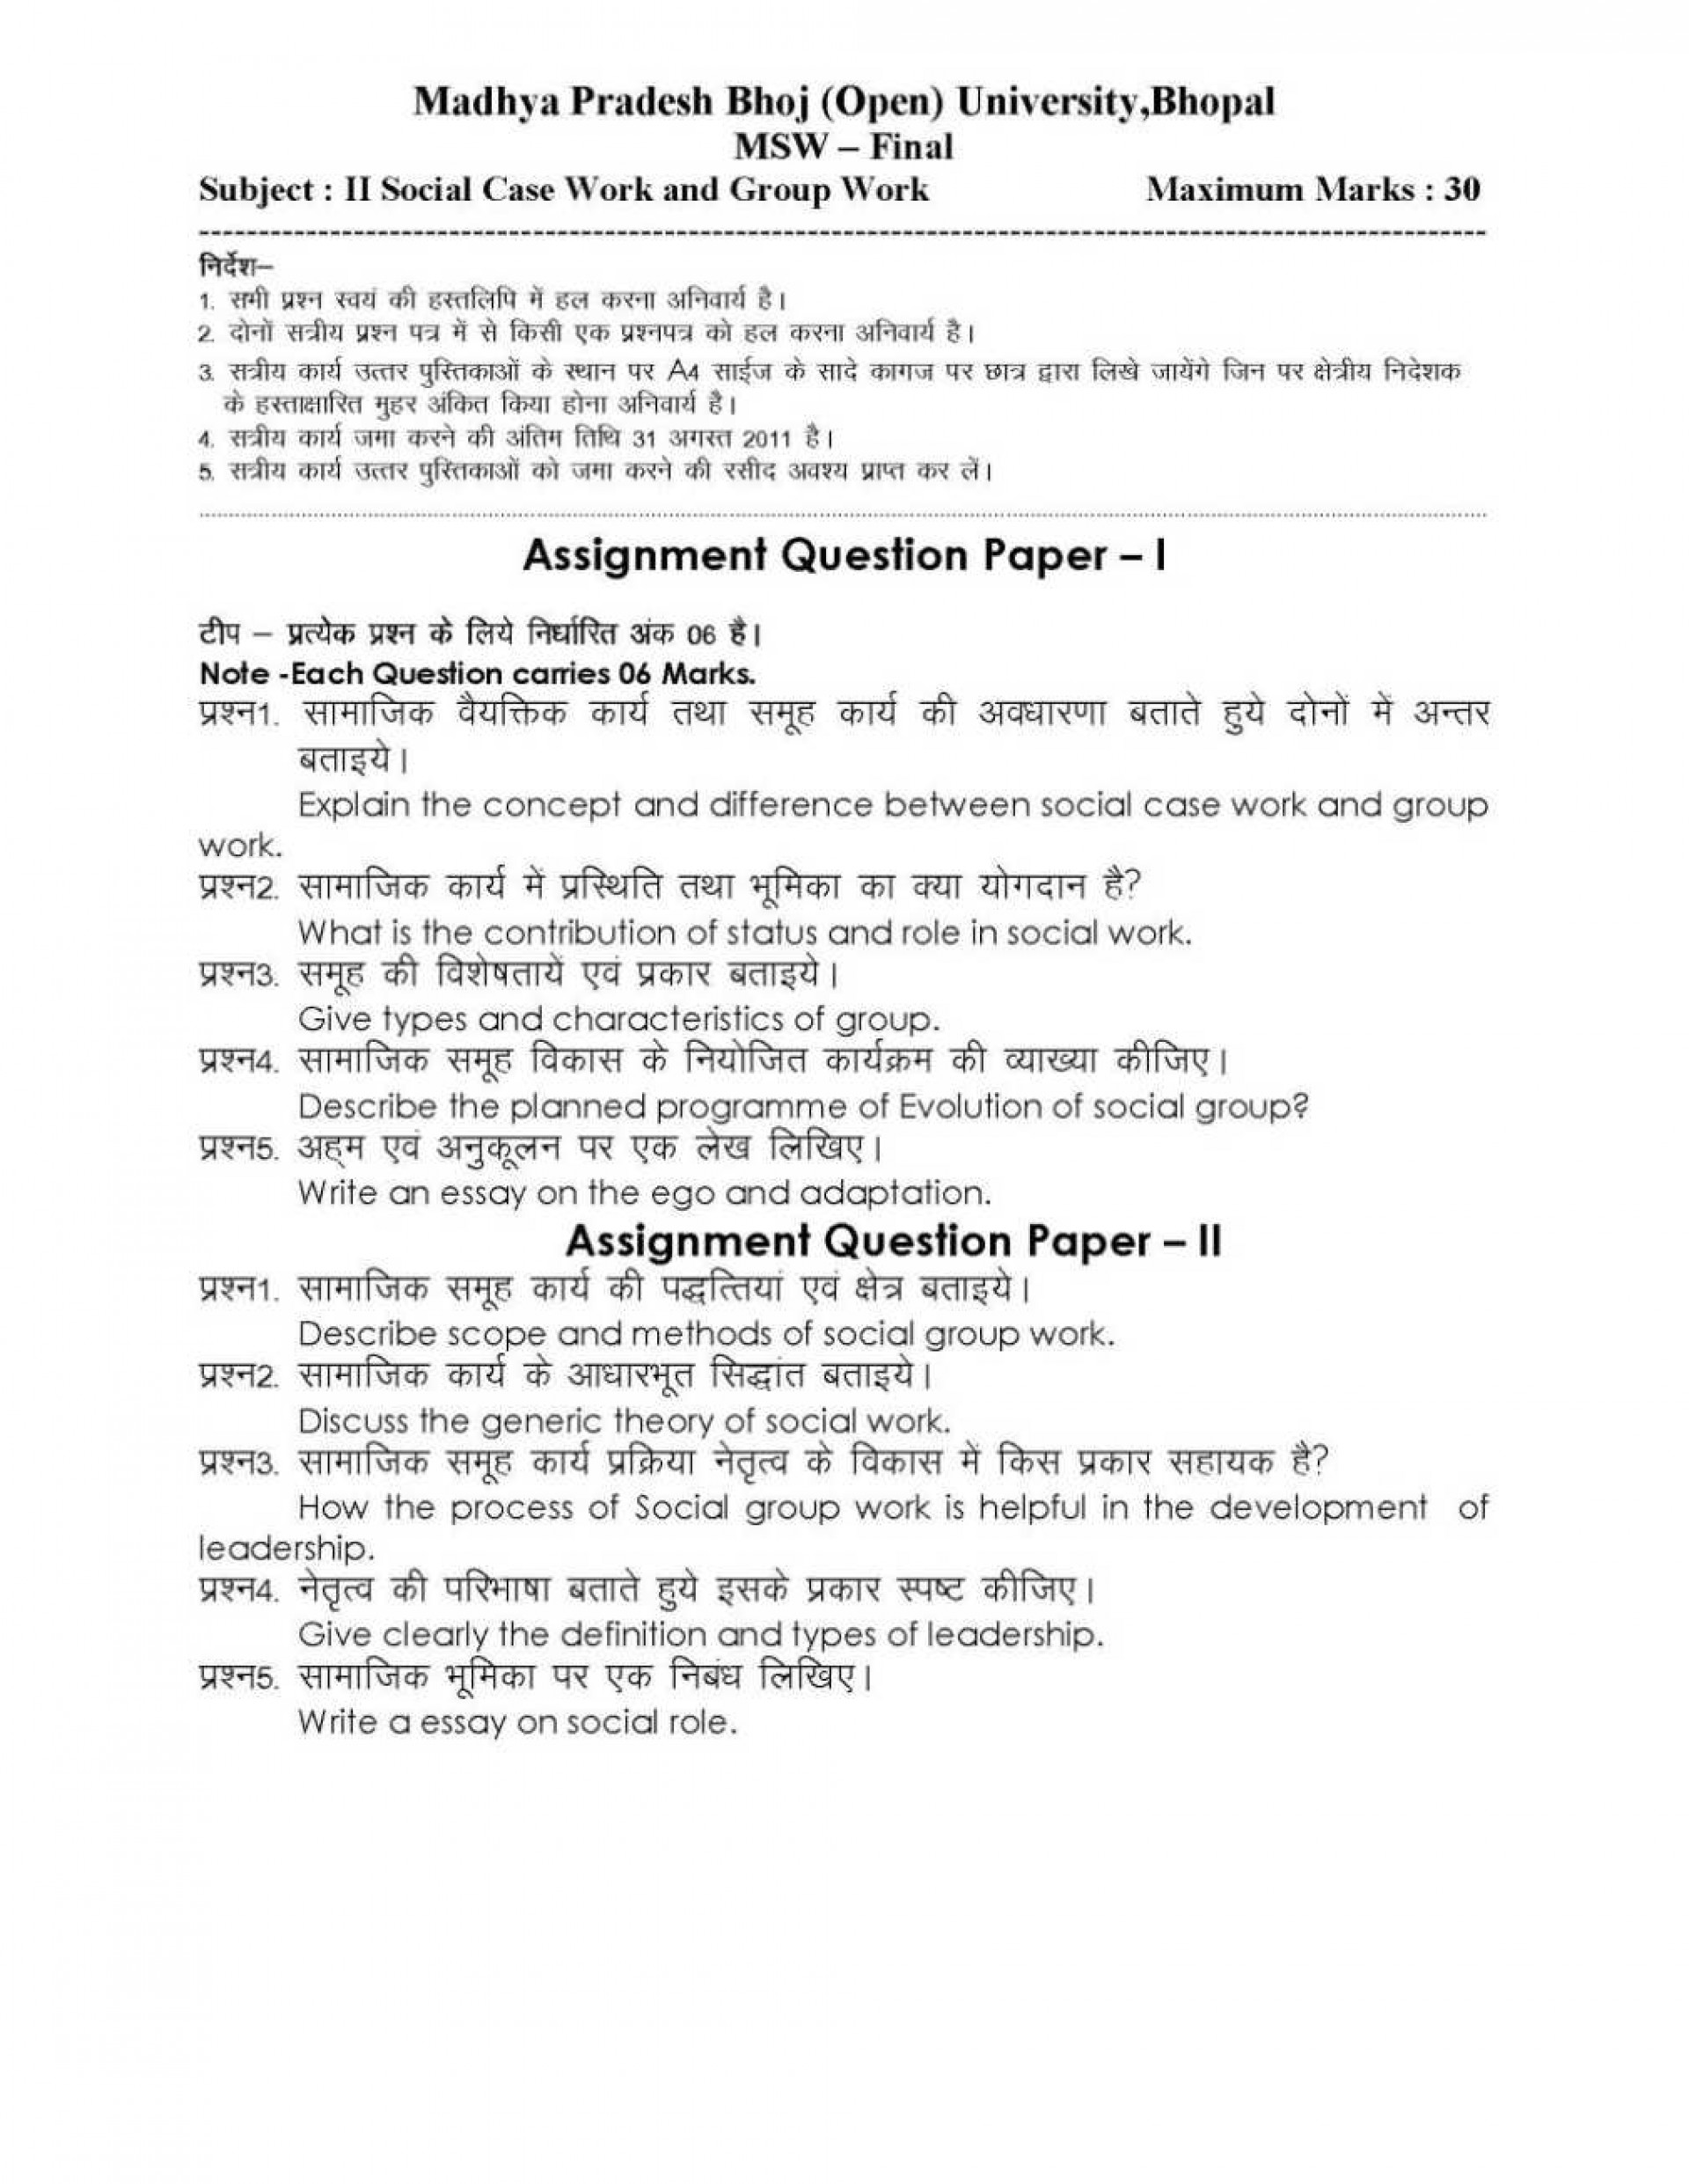 016 Definition Essay Outline Example Bhoj University Bhopal Msw Phenomenal Sample Extended 1920